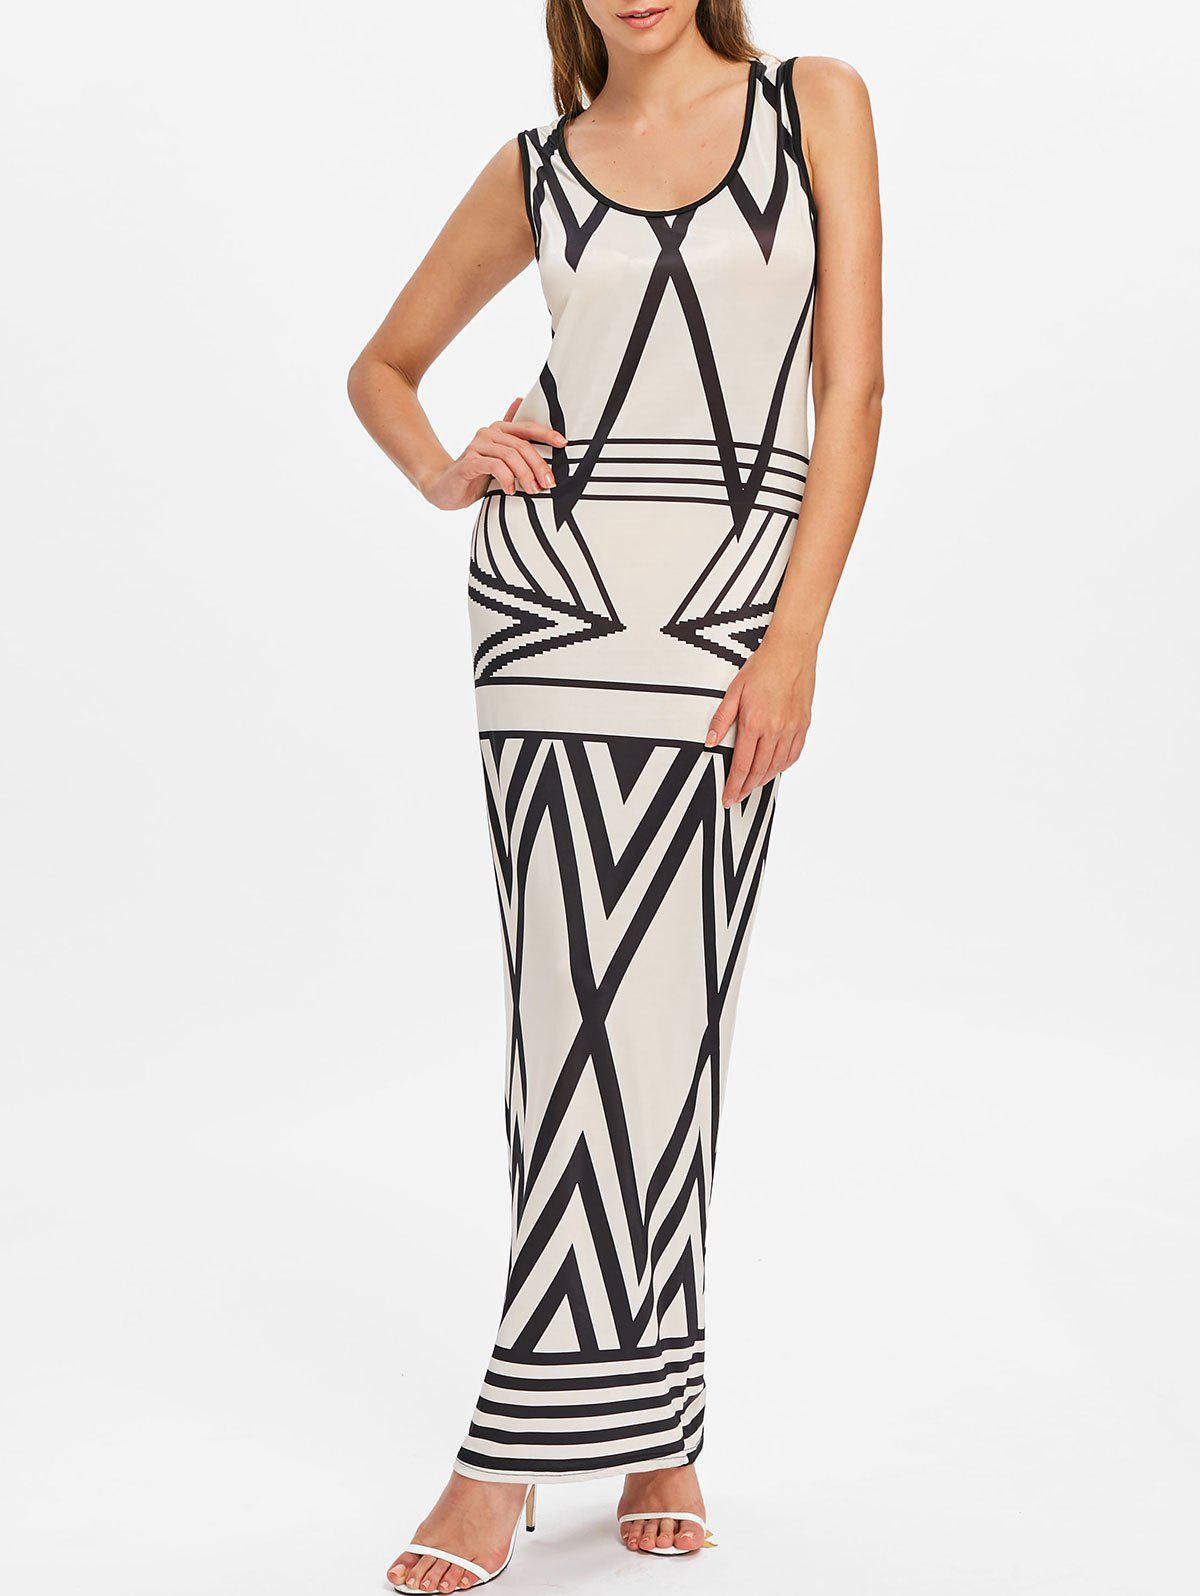 Chevron Print Sleeveless Maxi Dress - BEIGE XL